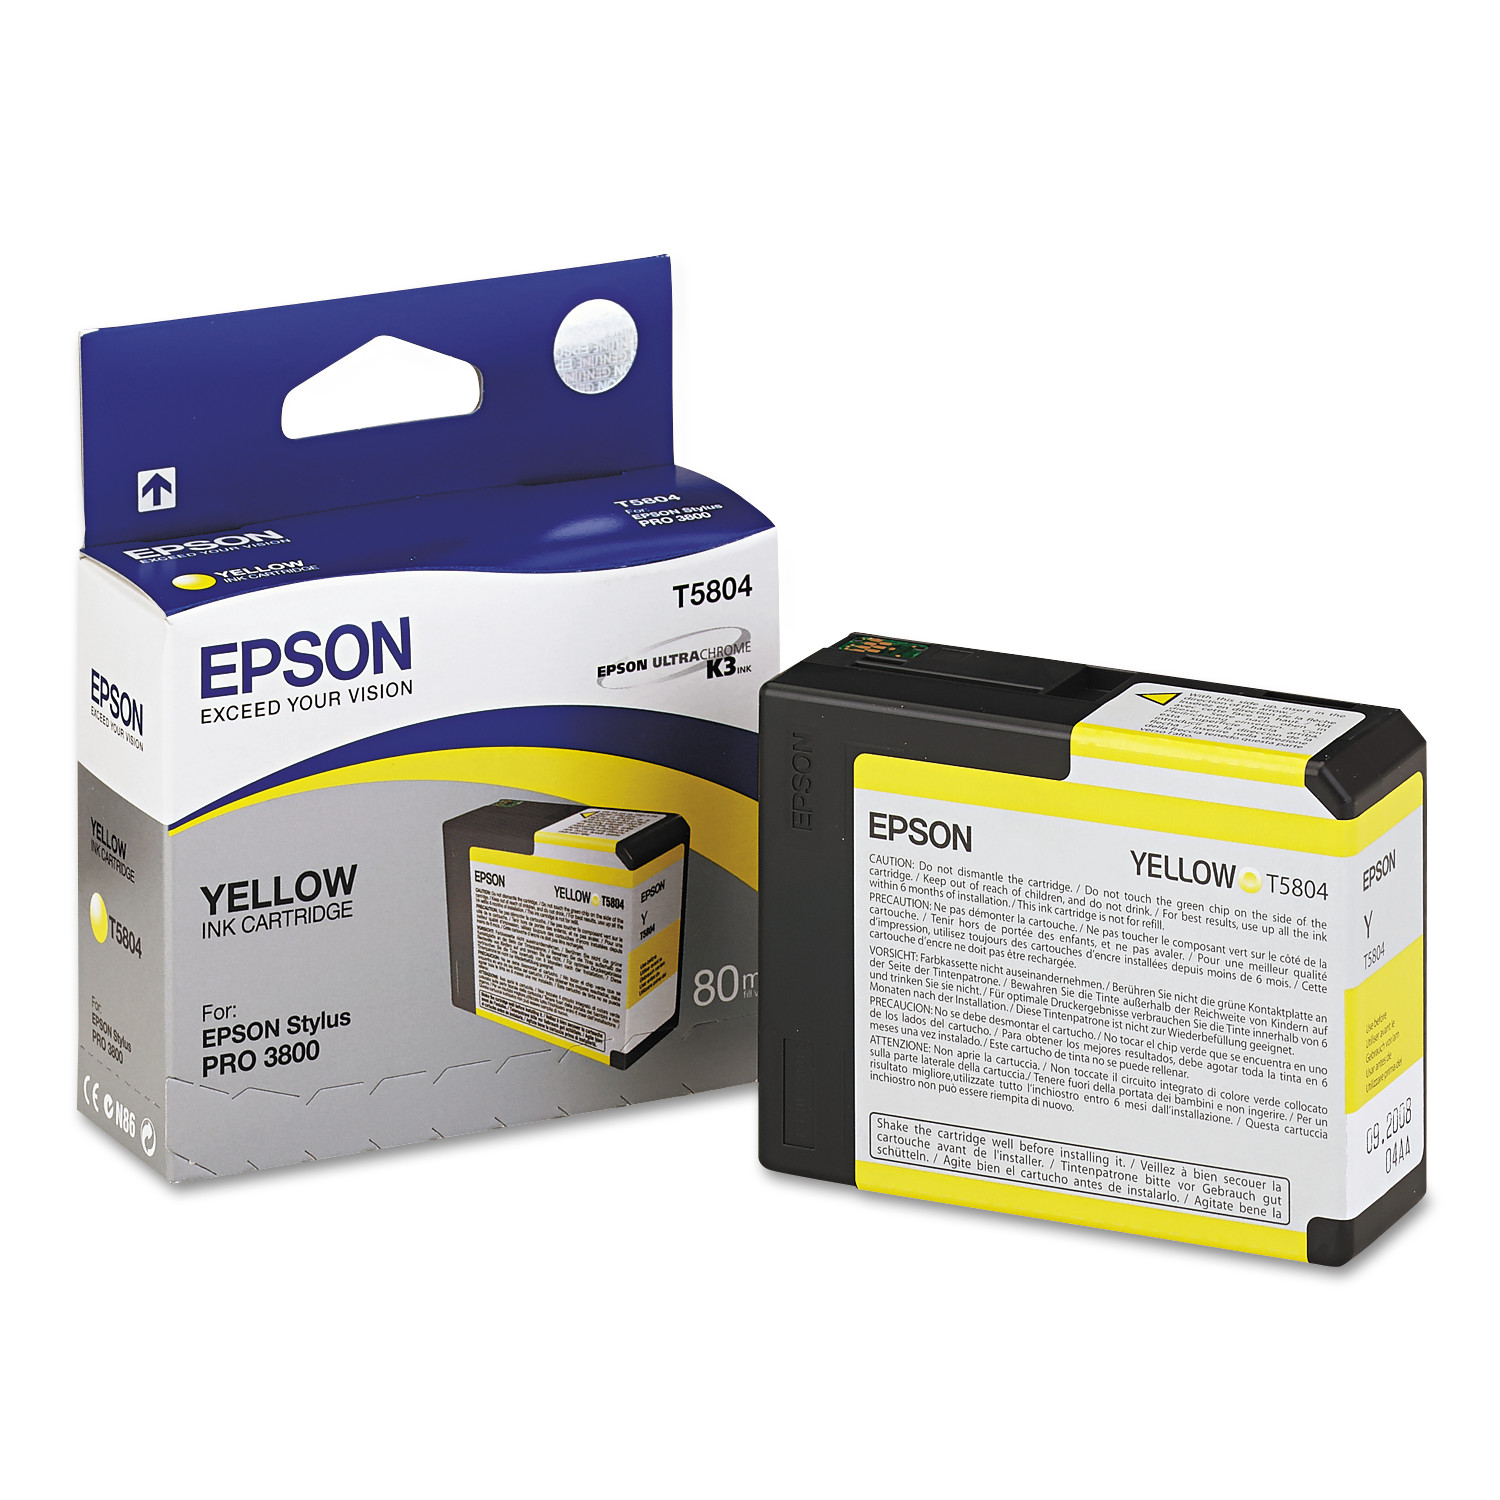 Epson T580400 UltraChrome K3 Ink, Yellow by Epson